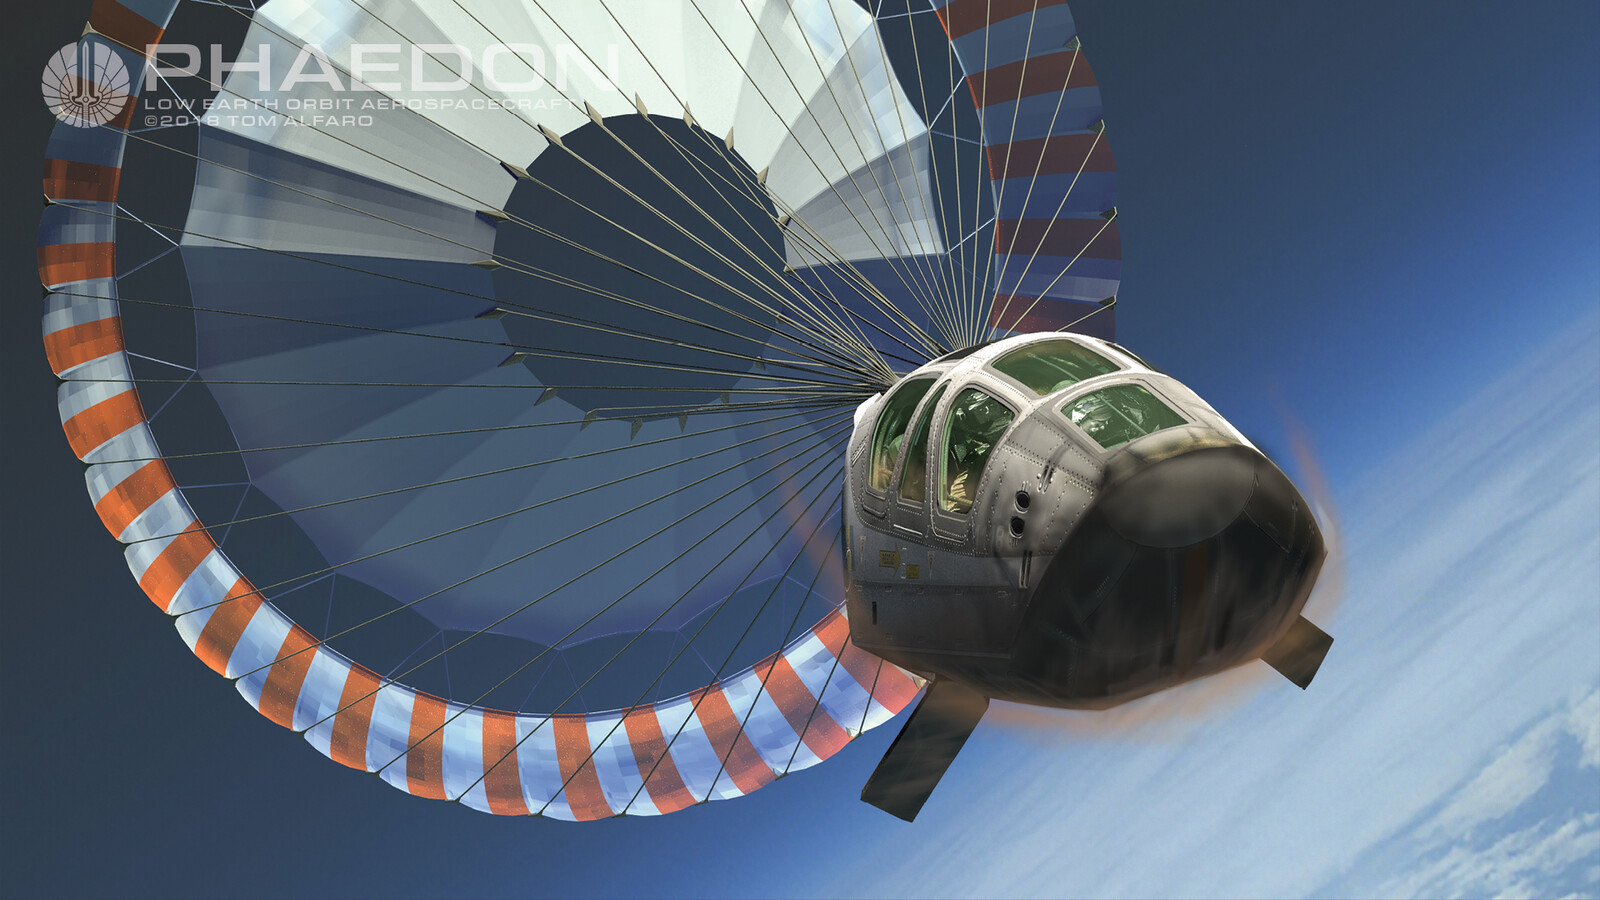 Crew escape module high altitude deceleration parachute deploys.